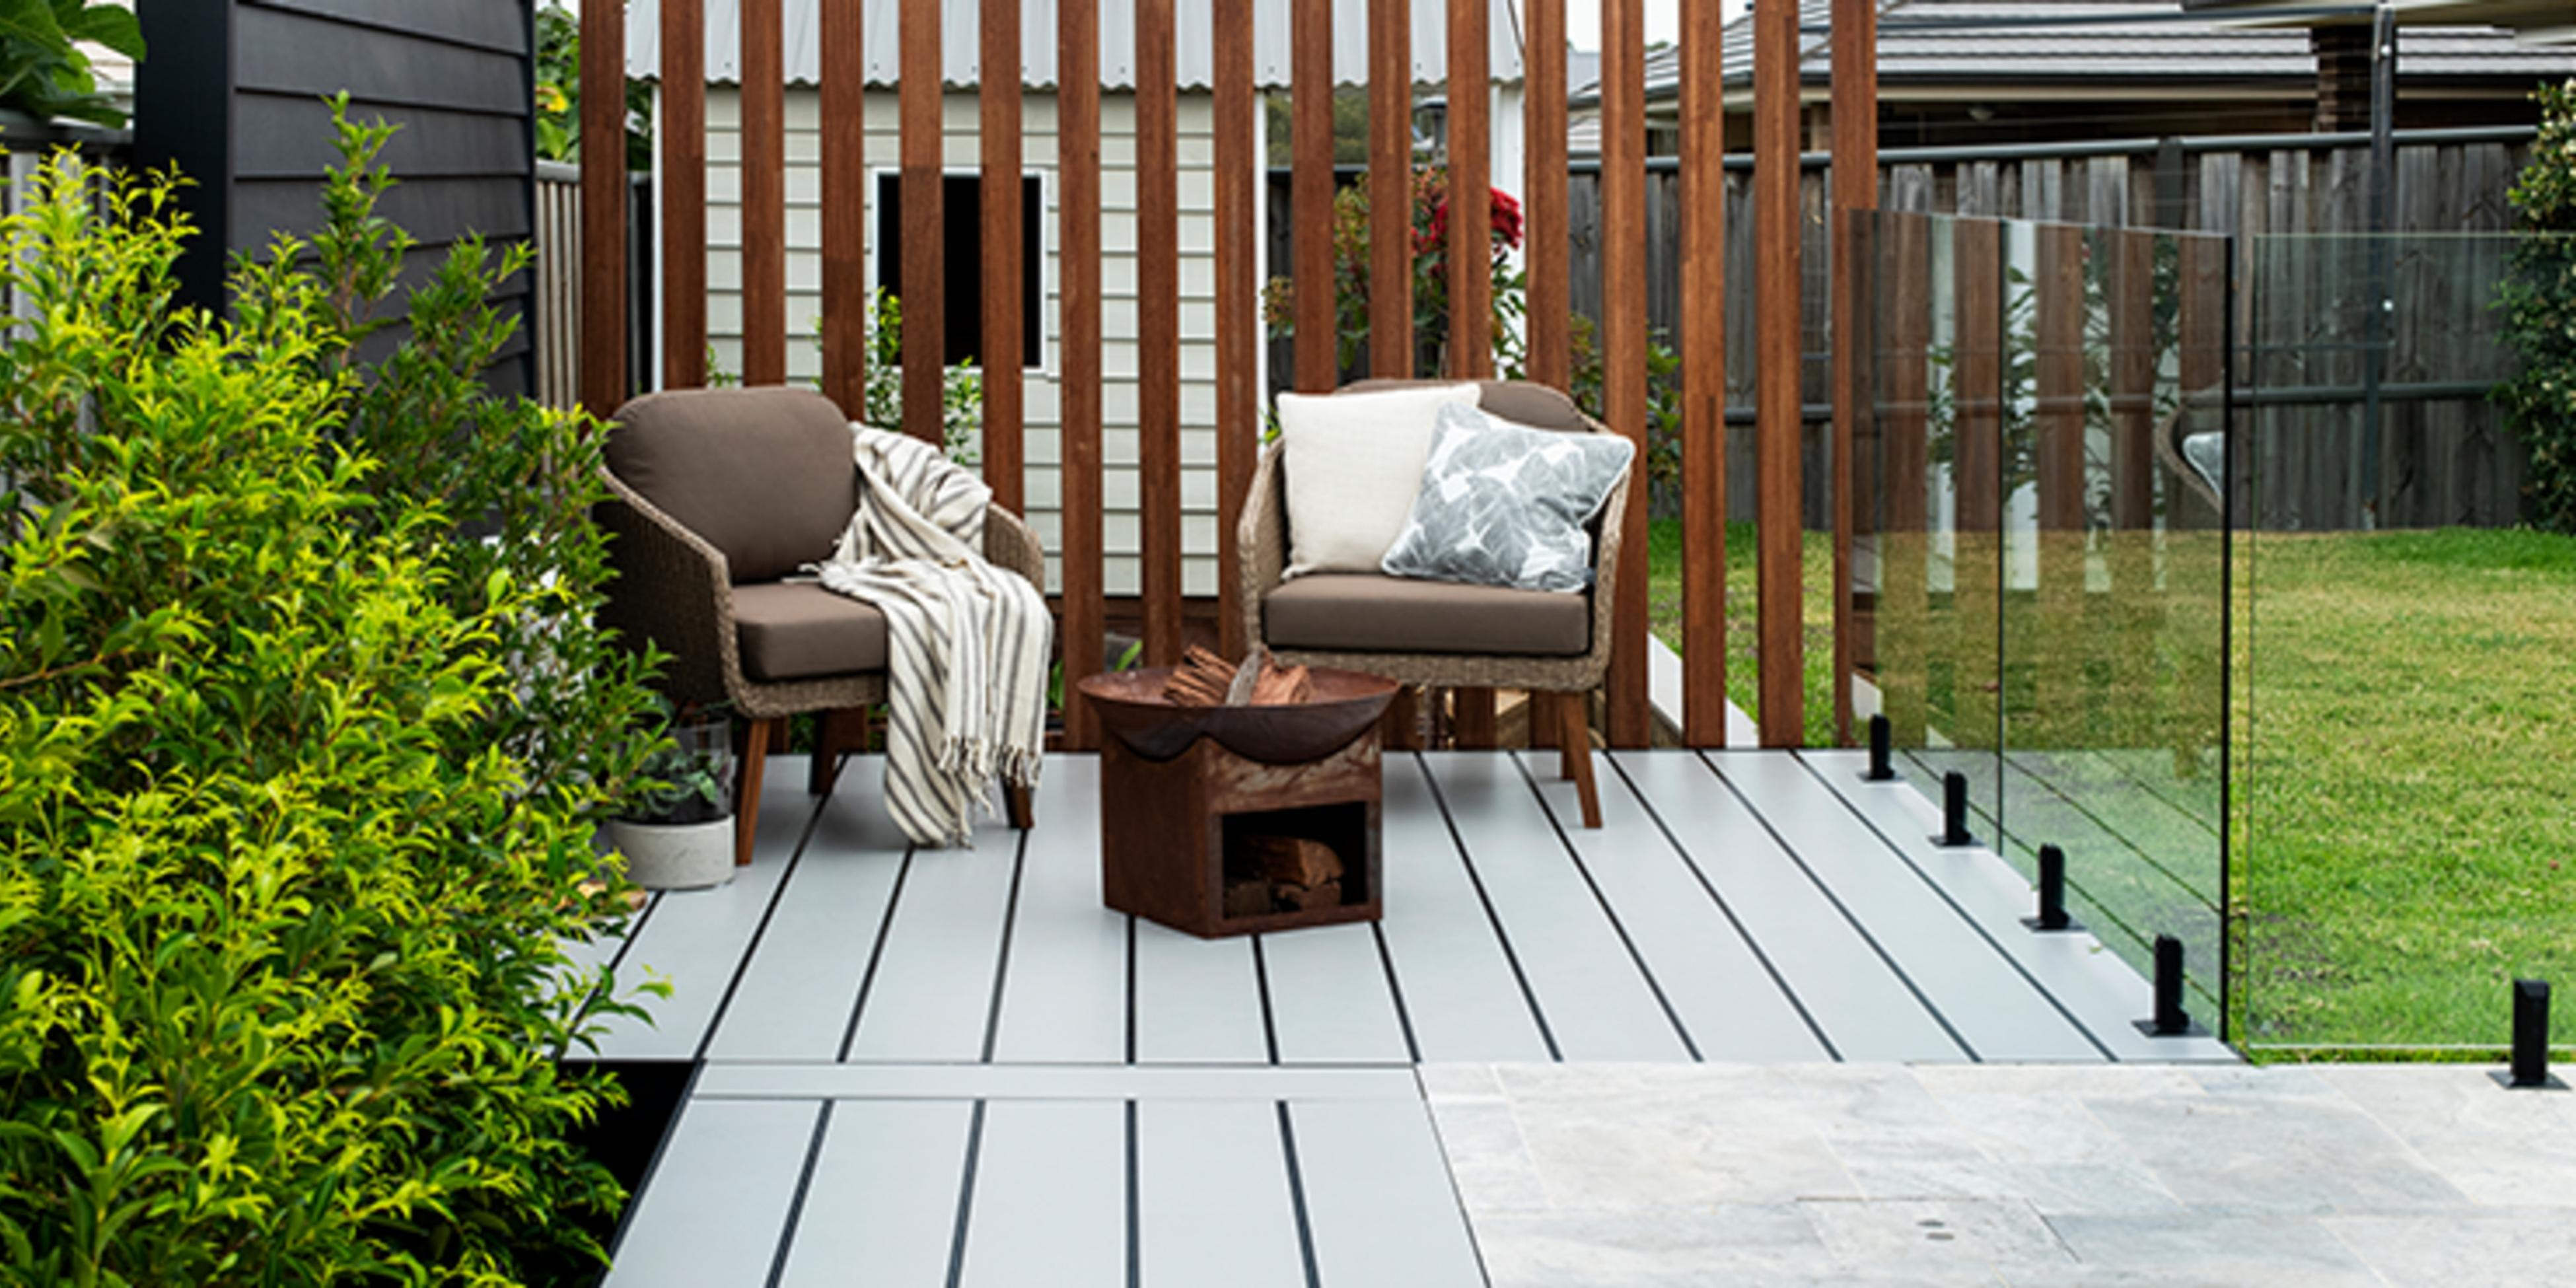 Pool surrounded by timber decking with two chairs and a firepit